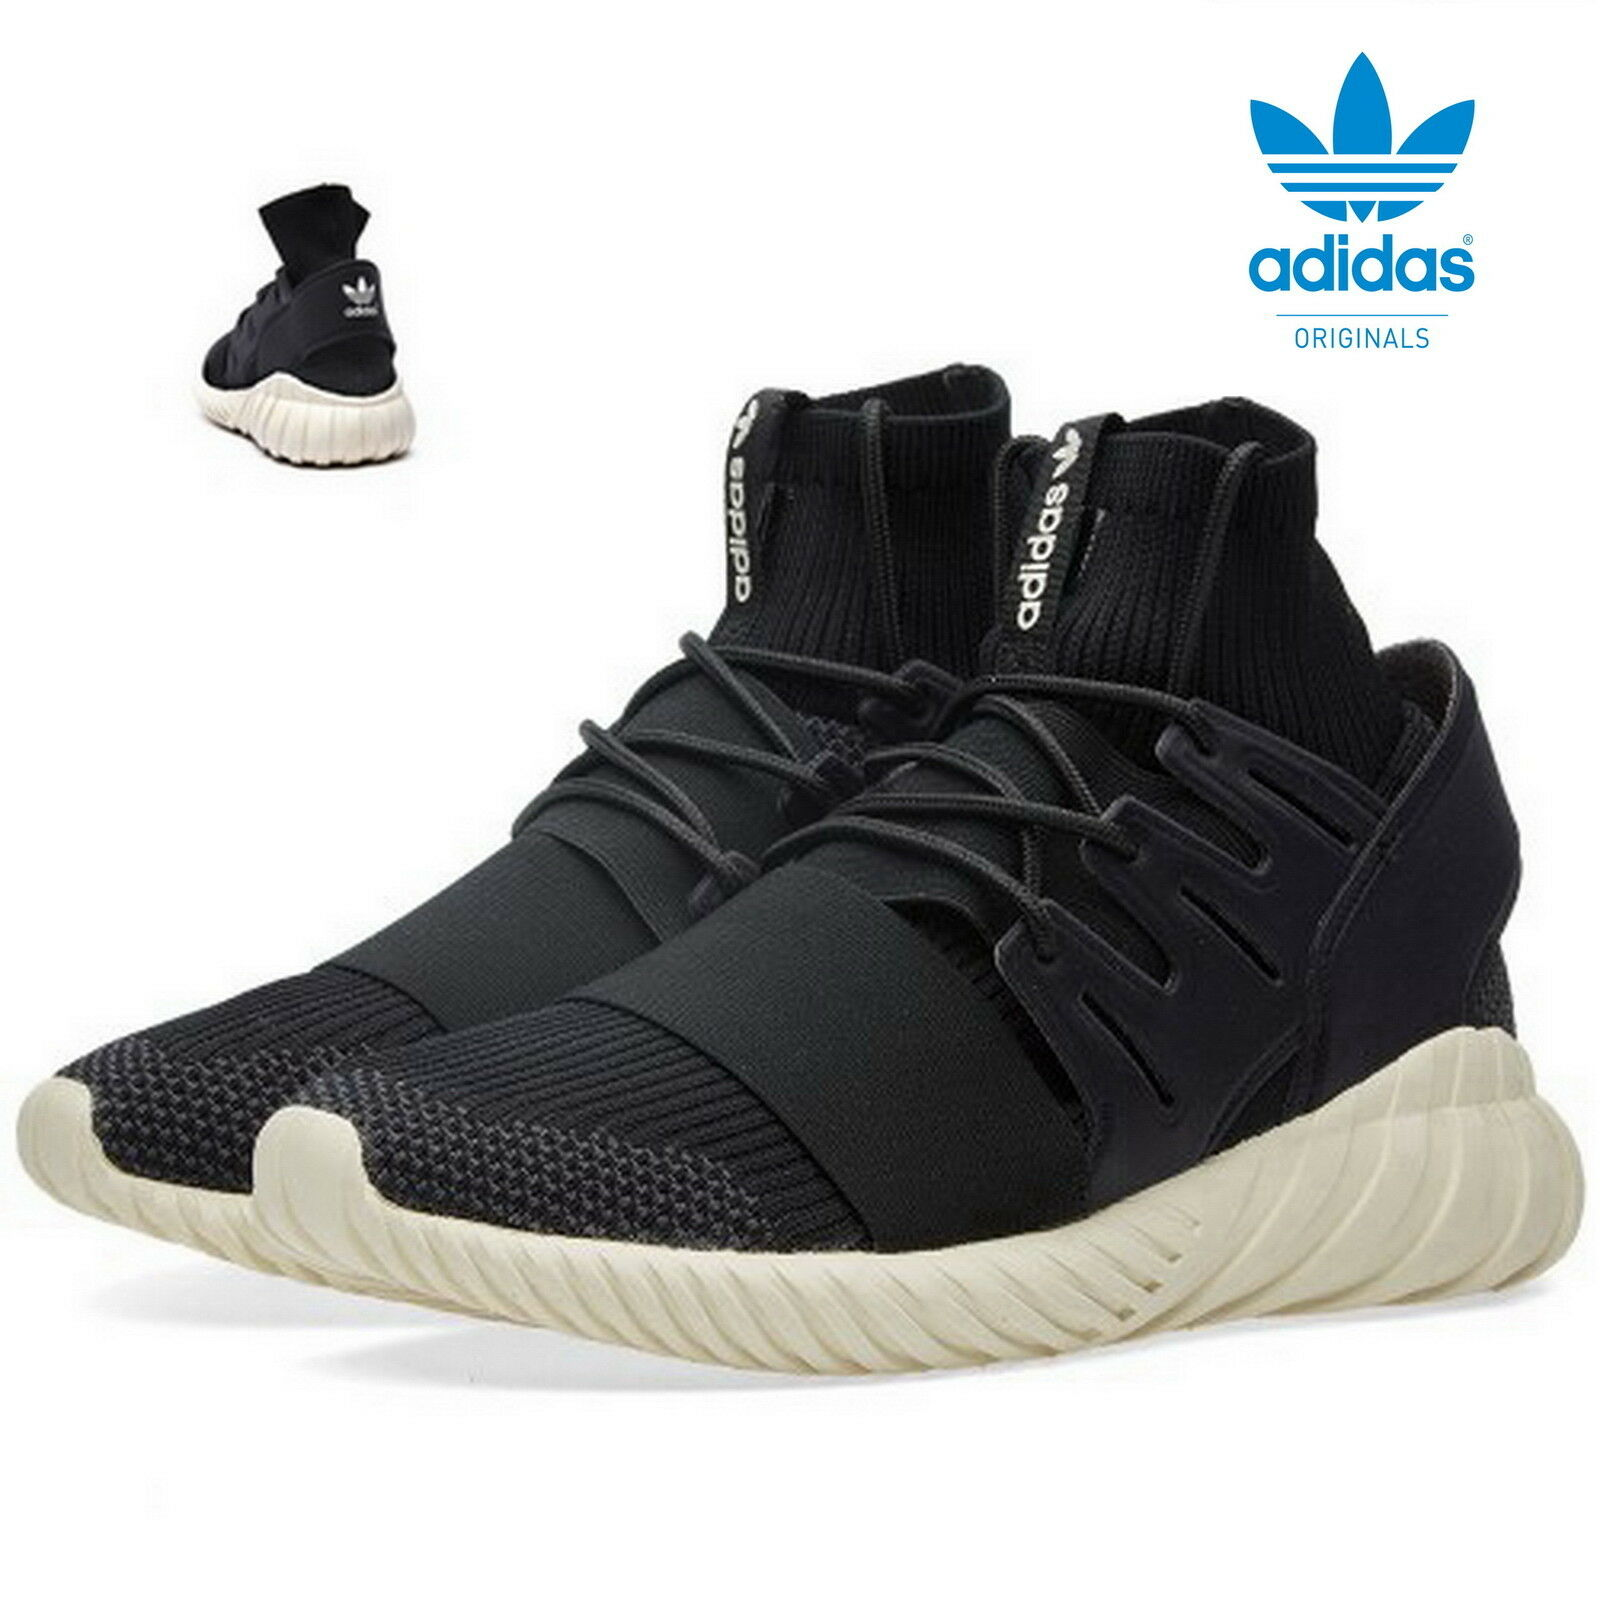 Adidas Tubular Doom Primeknit Sneaker Originals Turnschuhe UK-12 black S74921